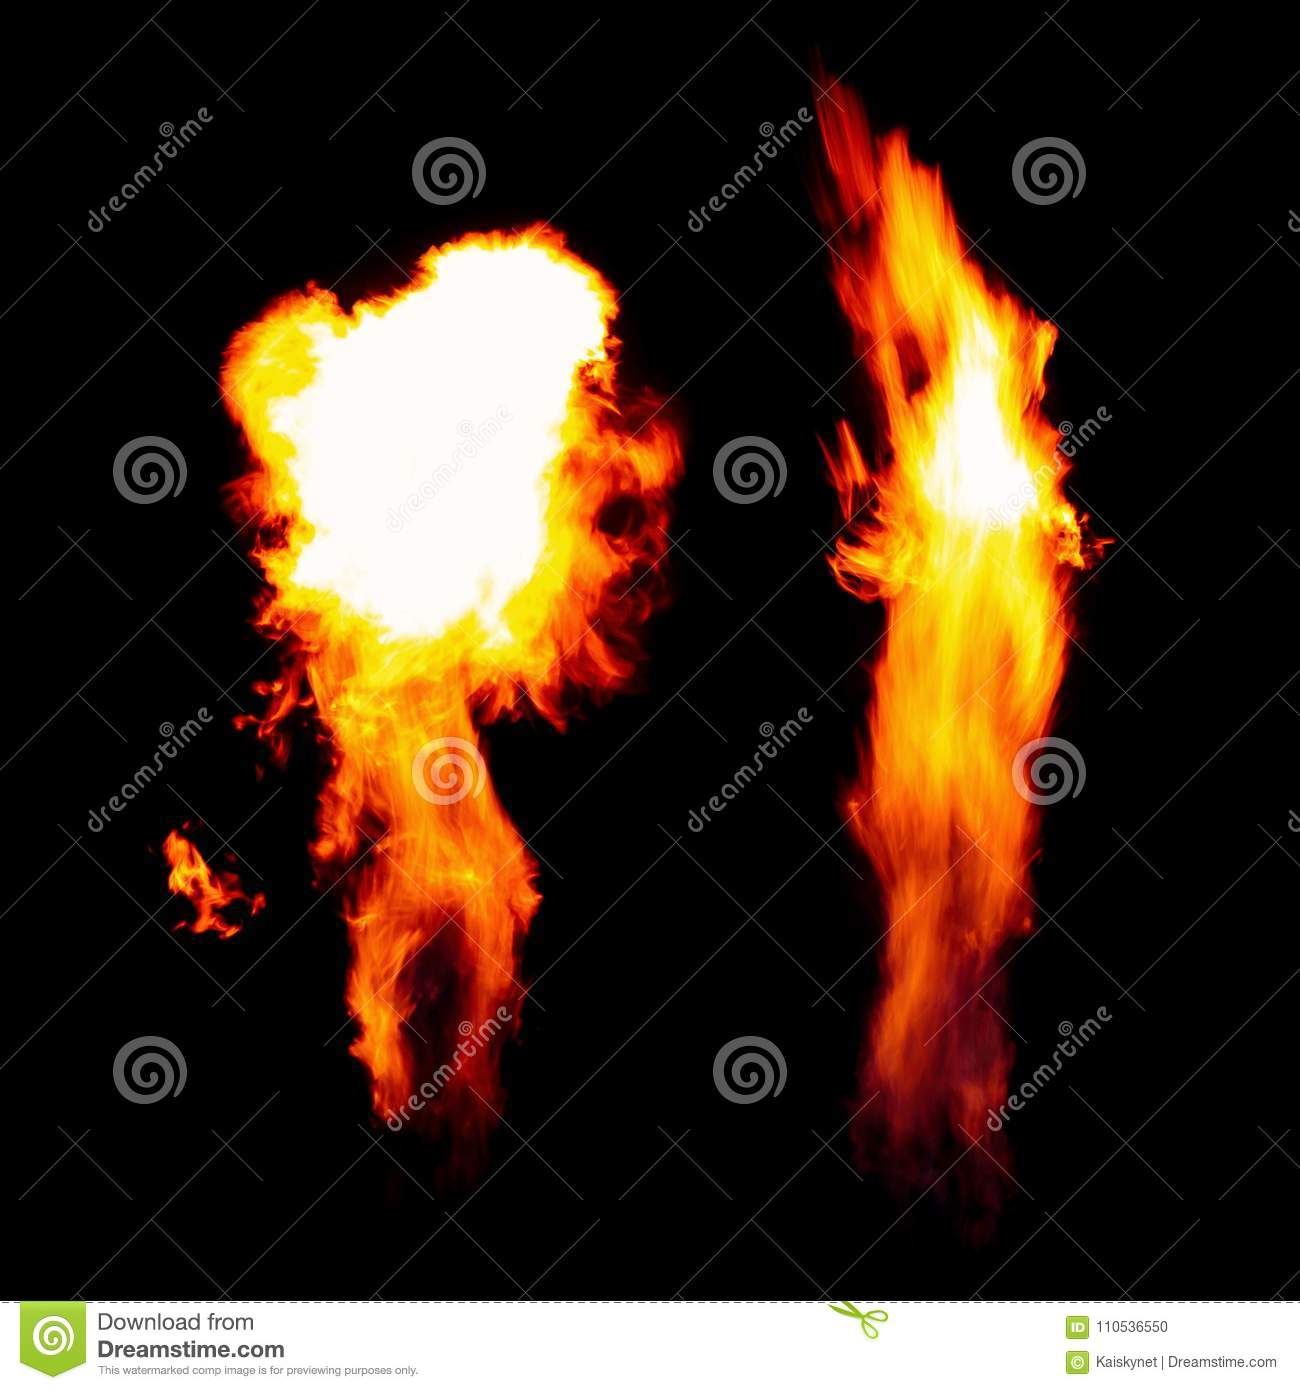 Burning torch, Flames in the dark isolated on black background